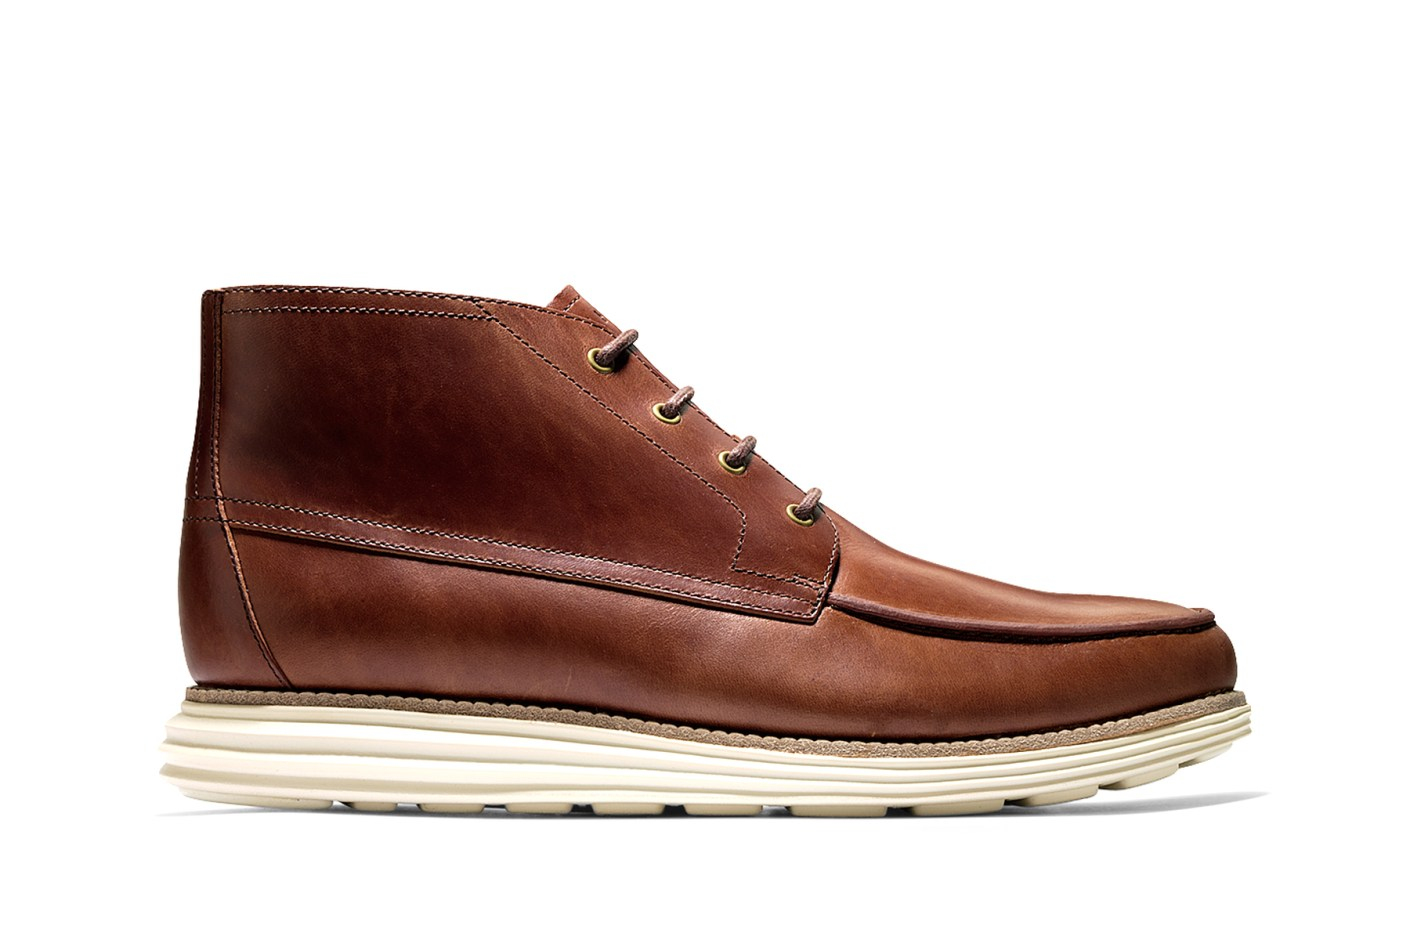 Image of Cole Haan 2014 Spring/Summer LunarGrand Collection